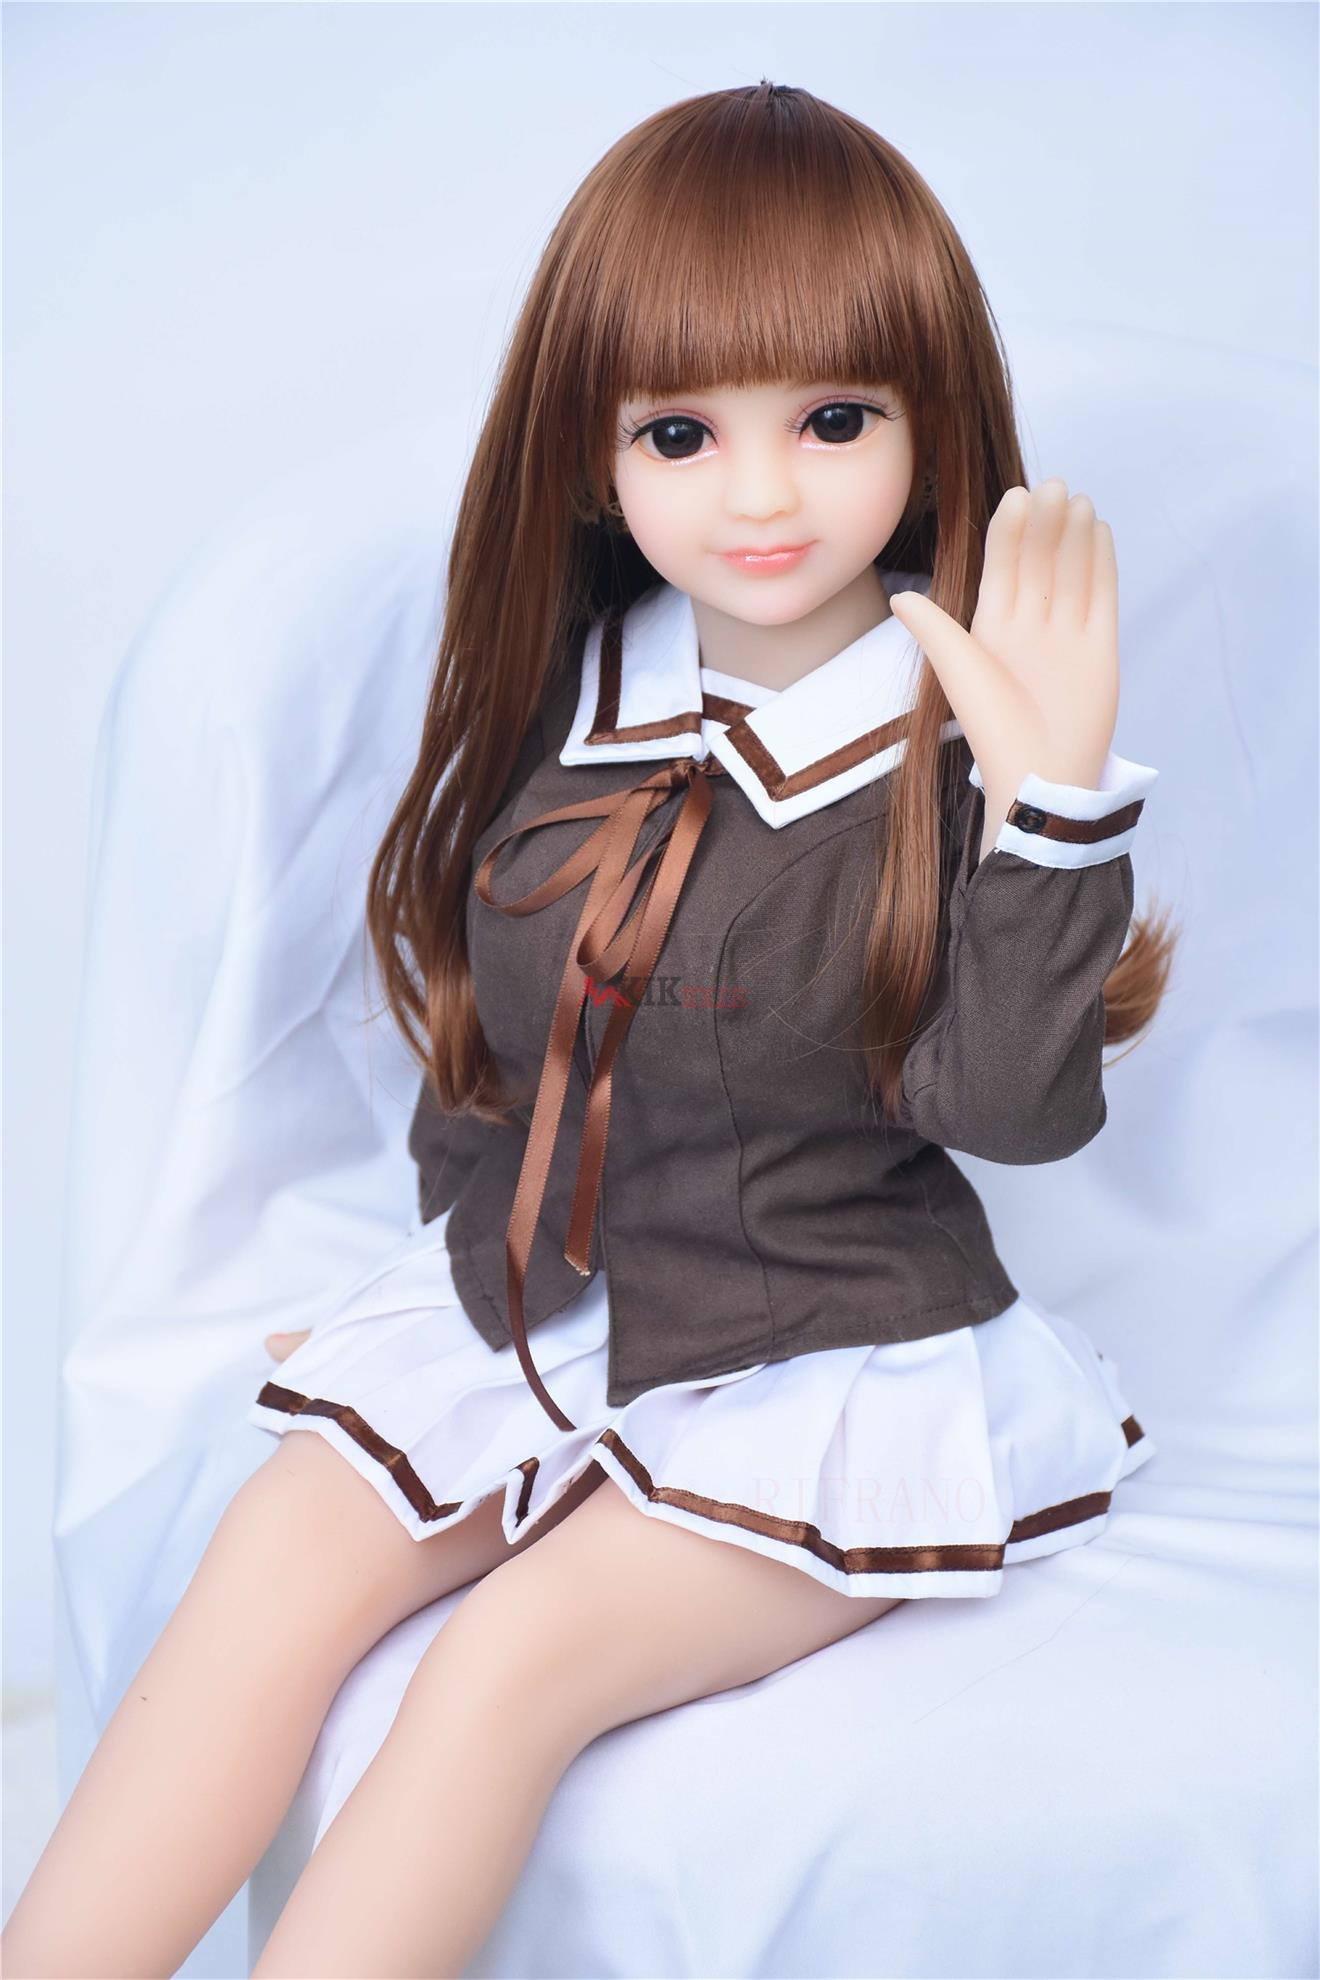 65cm petite tiny sex doll (31)